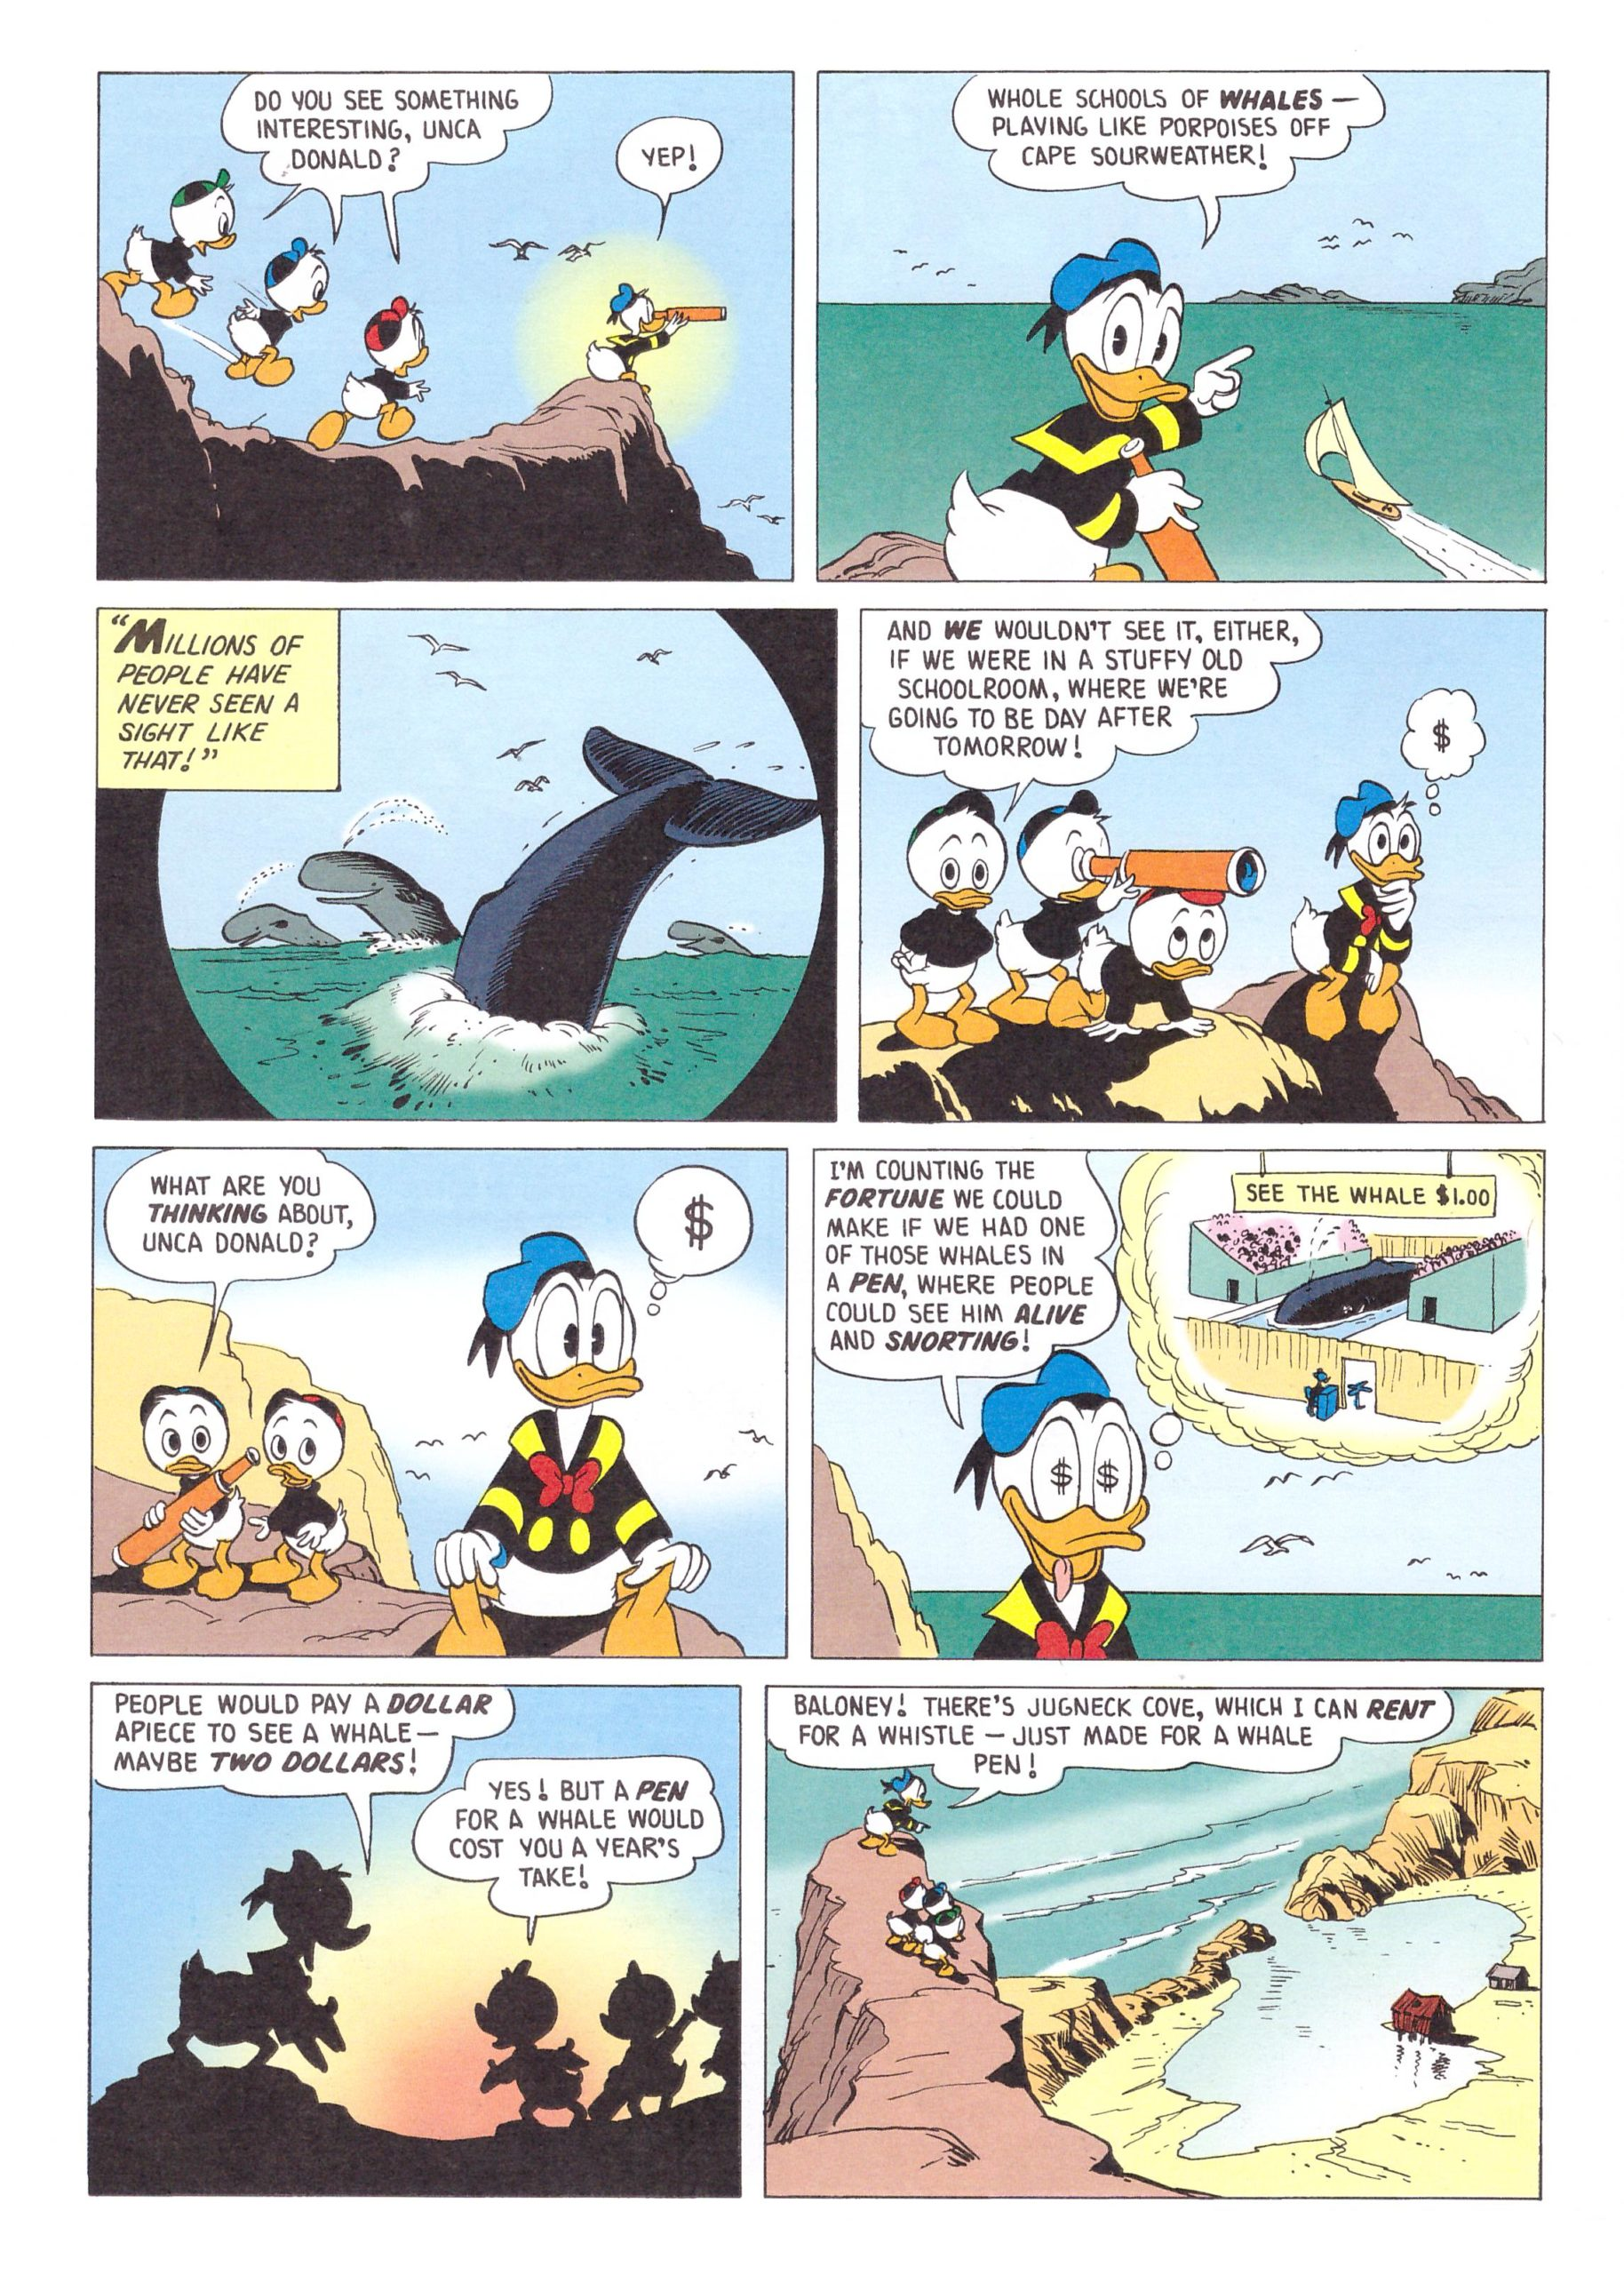 Walt Disney Comics and Stories by Carl Barks 31 review